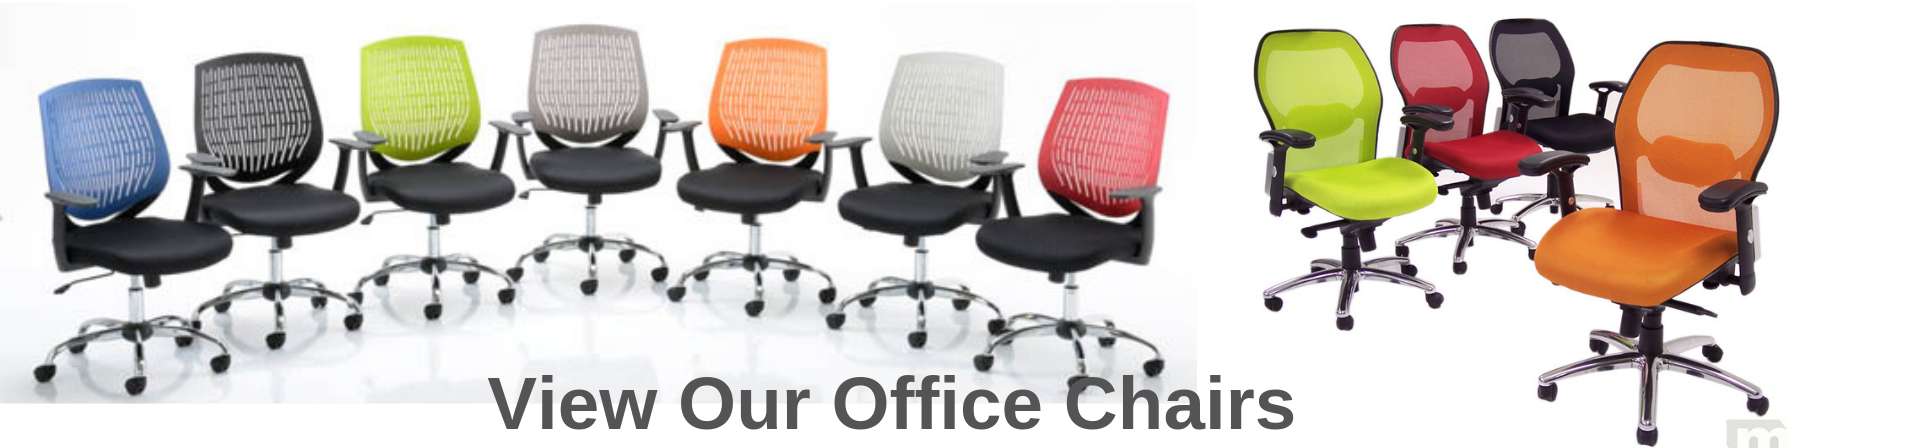 office seating canteen modern  traditional leather material chairs grace office